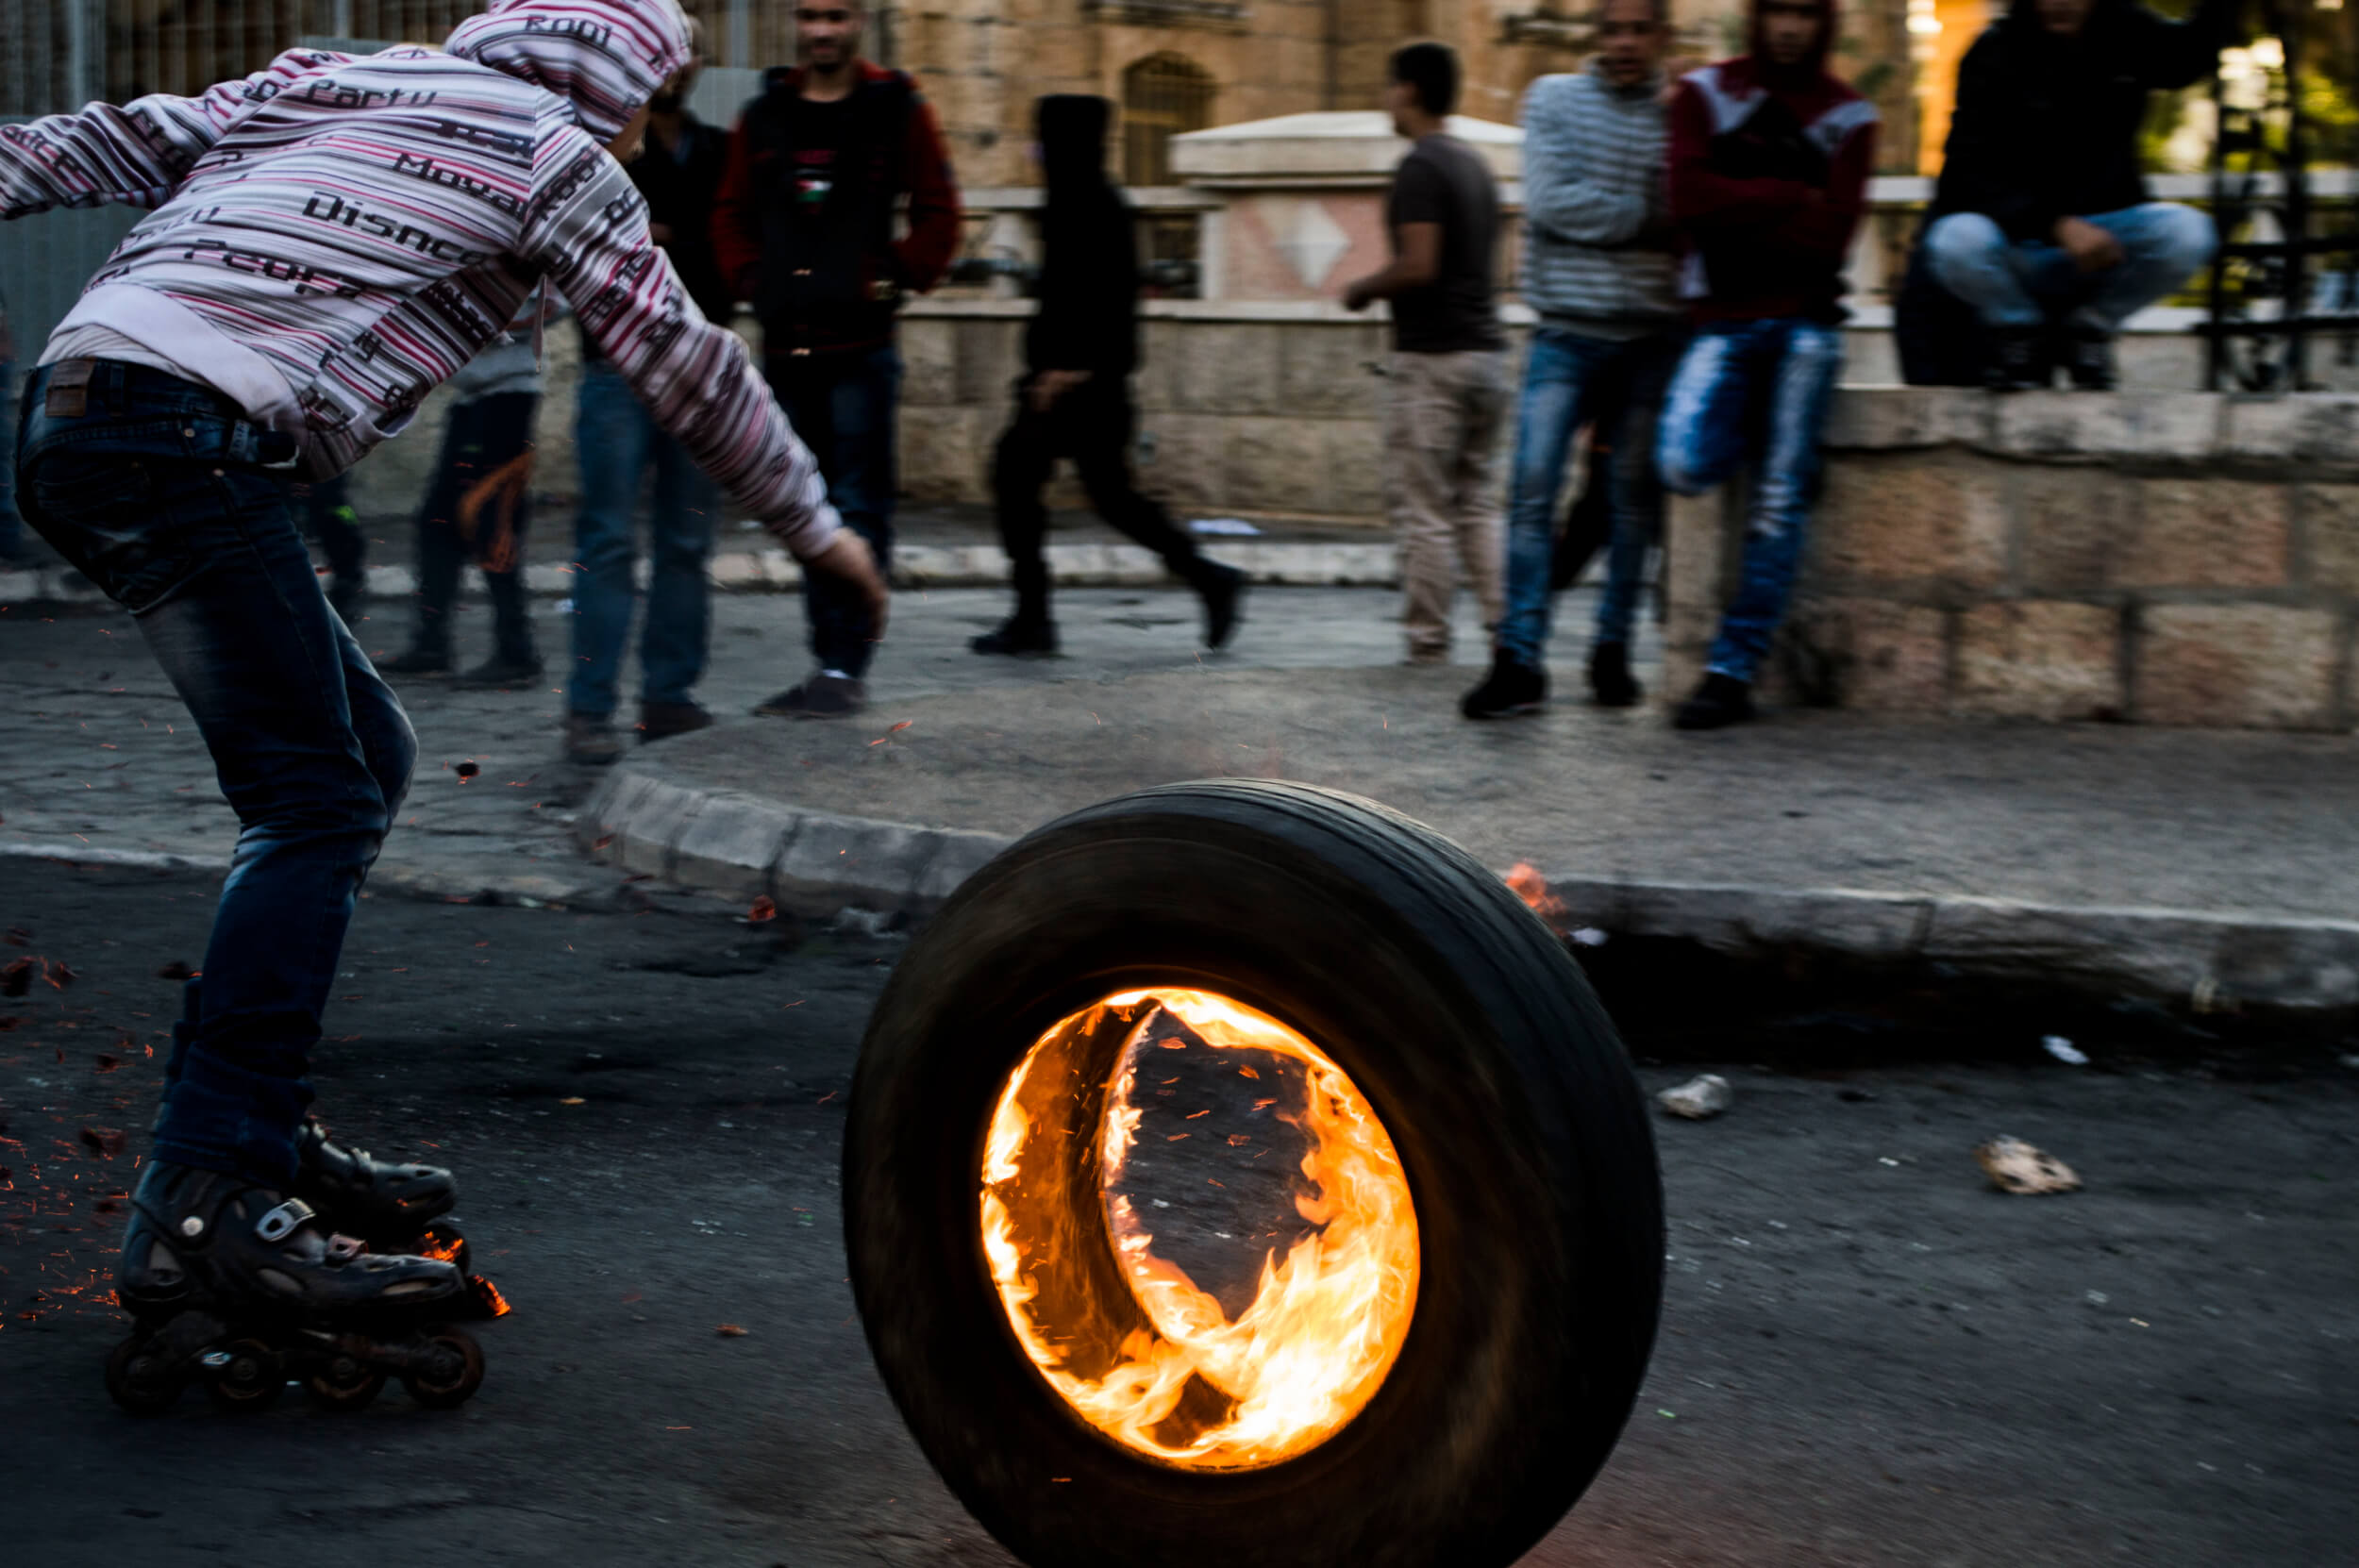 A boy on rollerblades rolls a flaming tire toward the frontline of clashes on Friday Oct. 9 in Bethlehem. (Photo: Sheren Khalel)